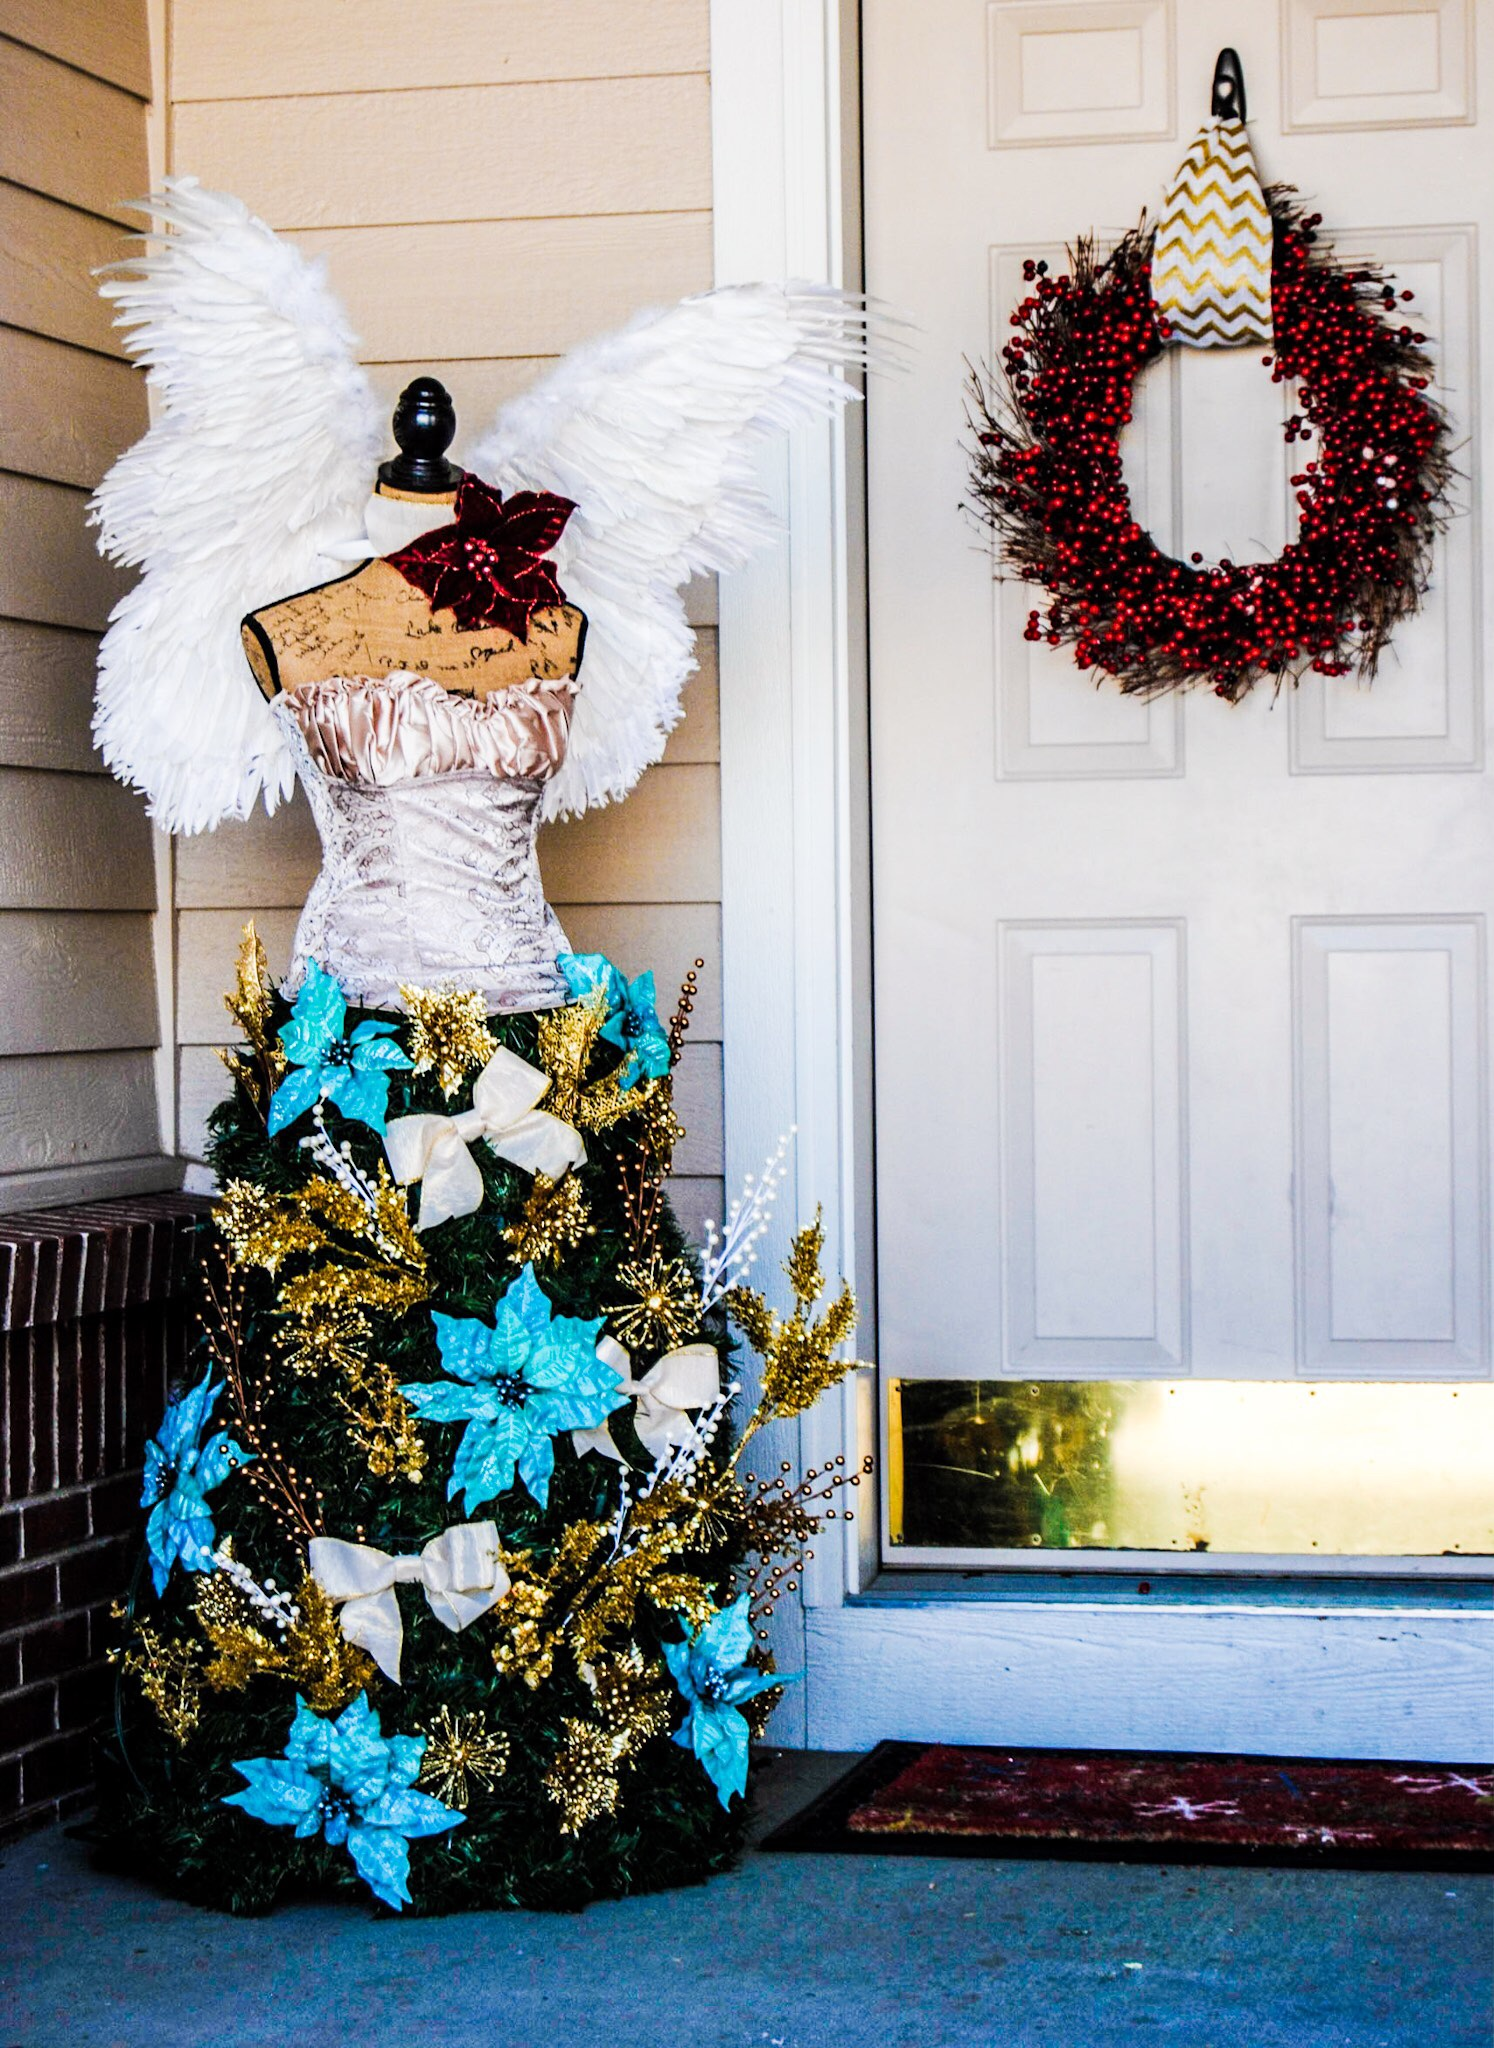 Dress Form Christmas Tree.Christmas Tree Dress Form The Everything Housewife